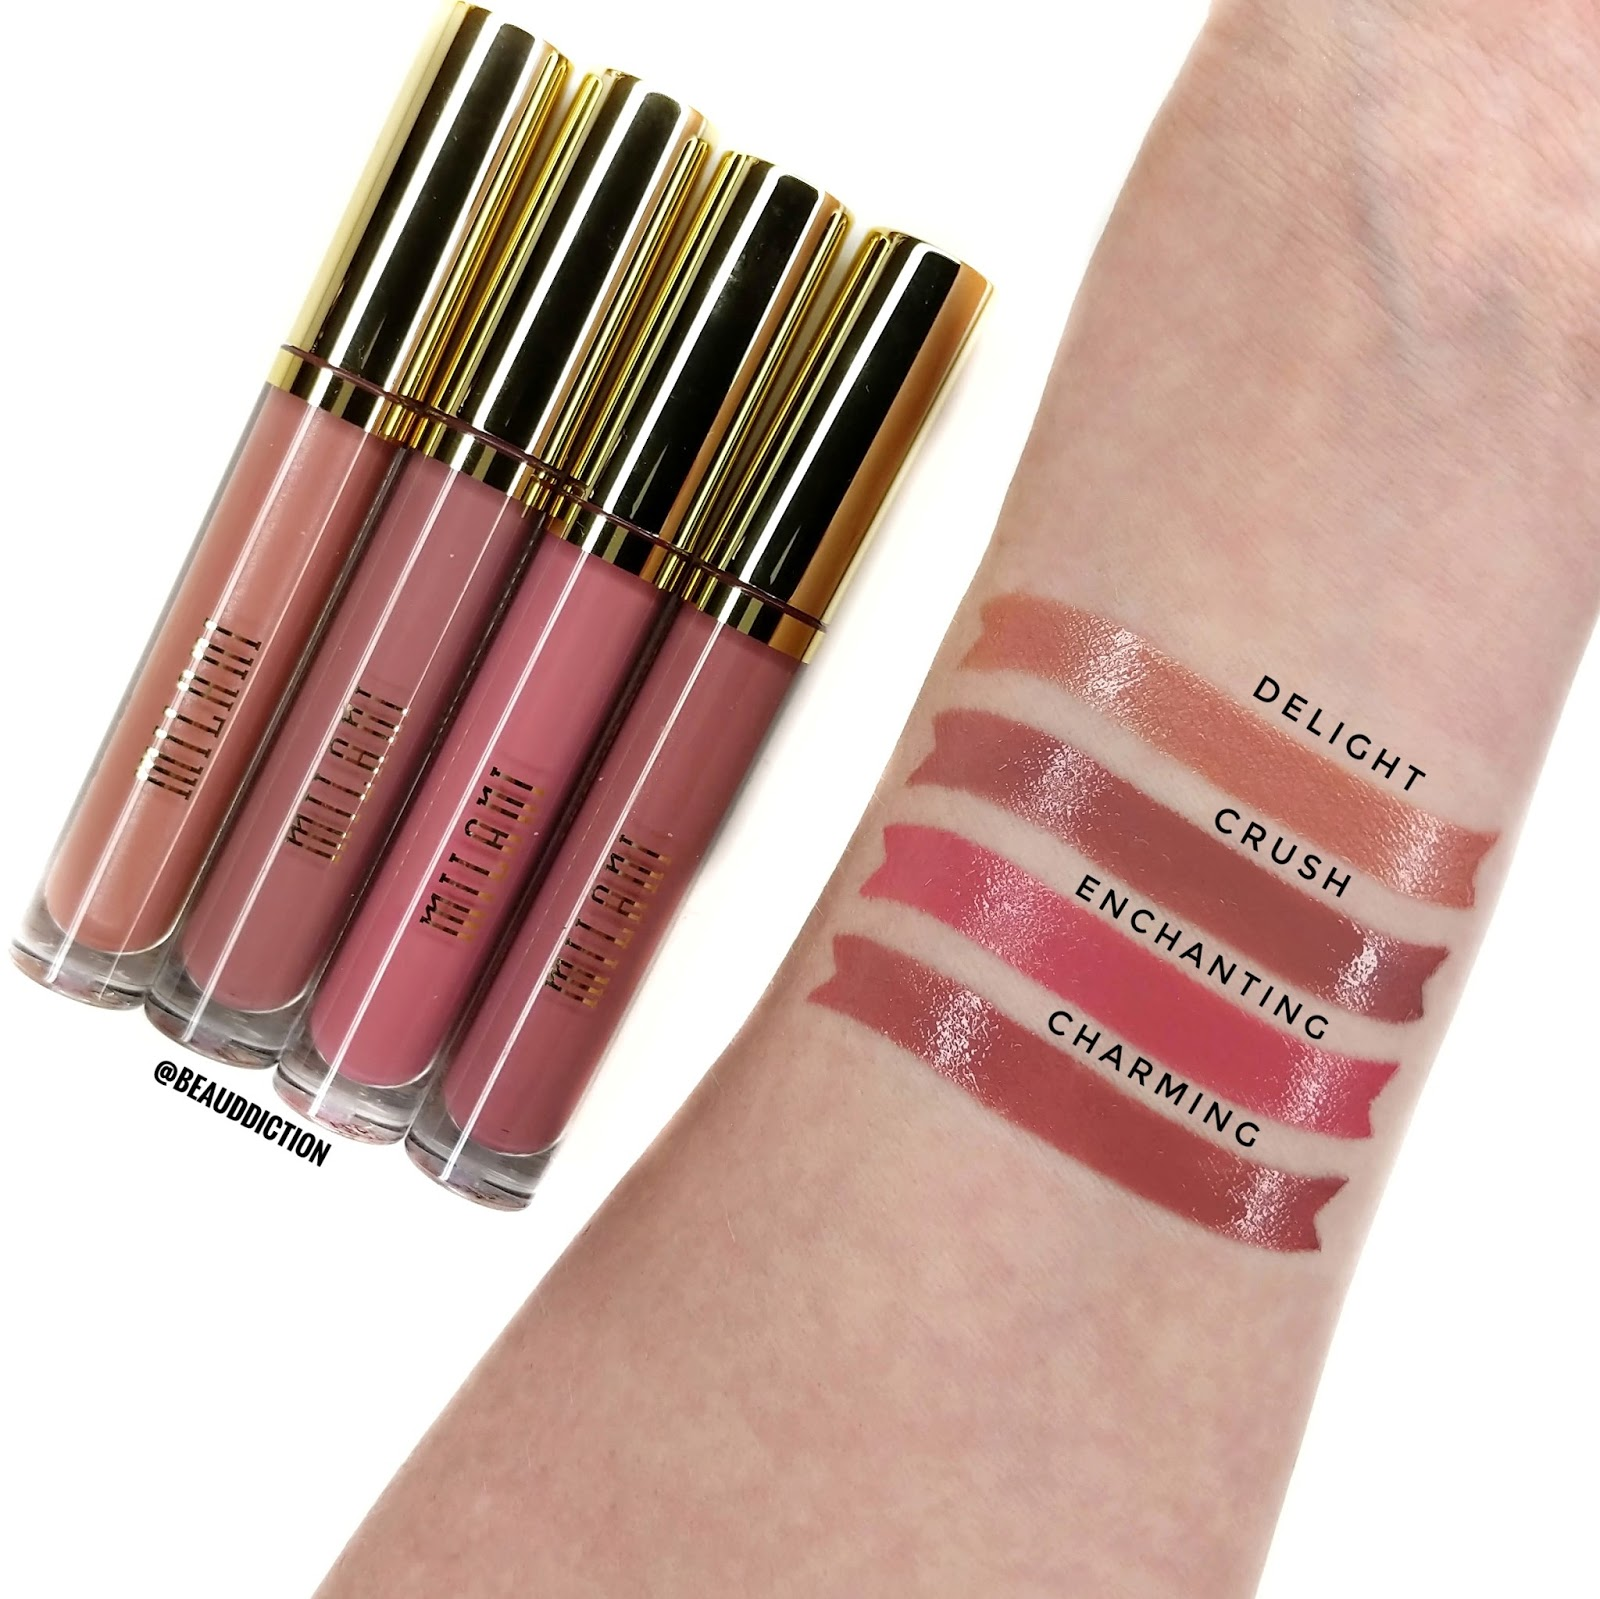 milani amore shine liquid lipstick swatches